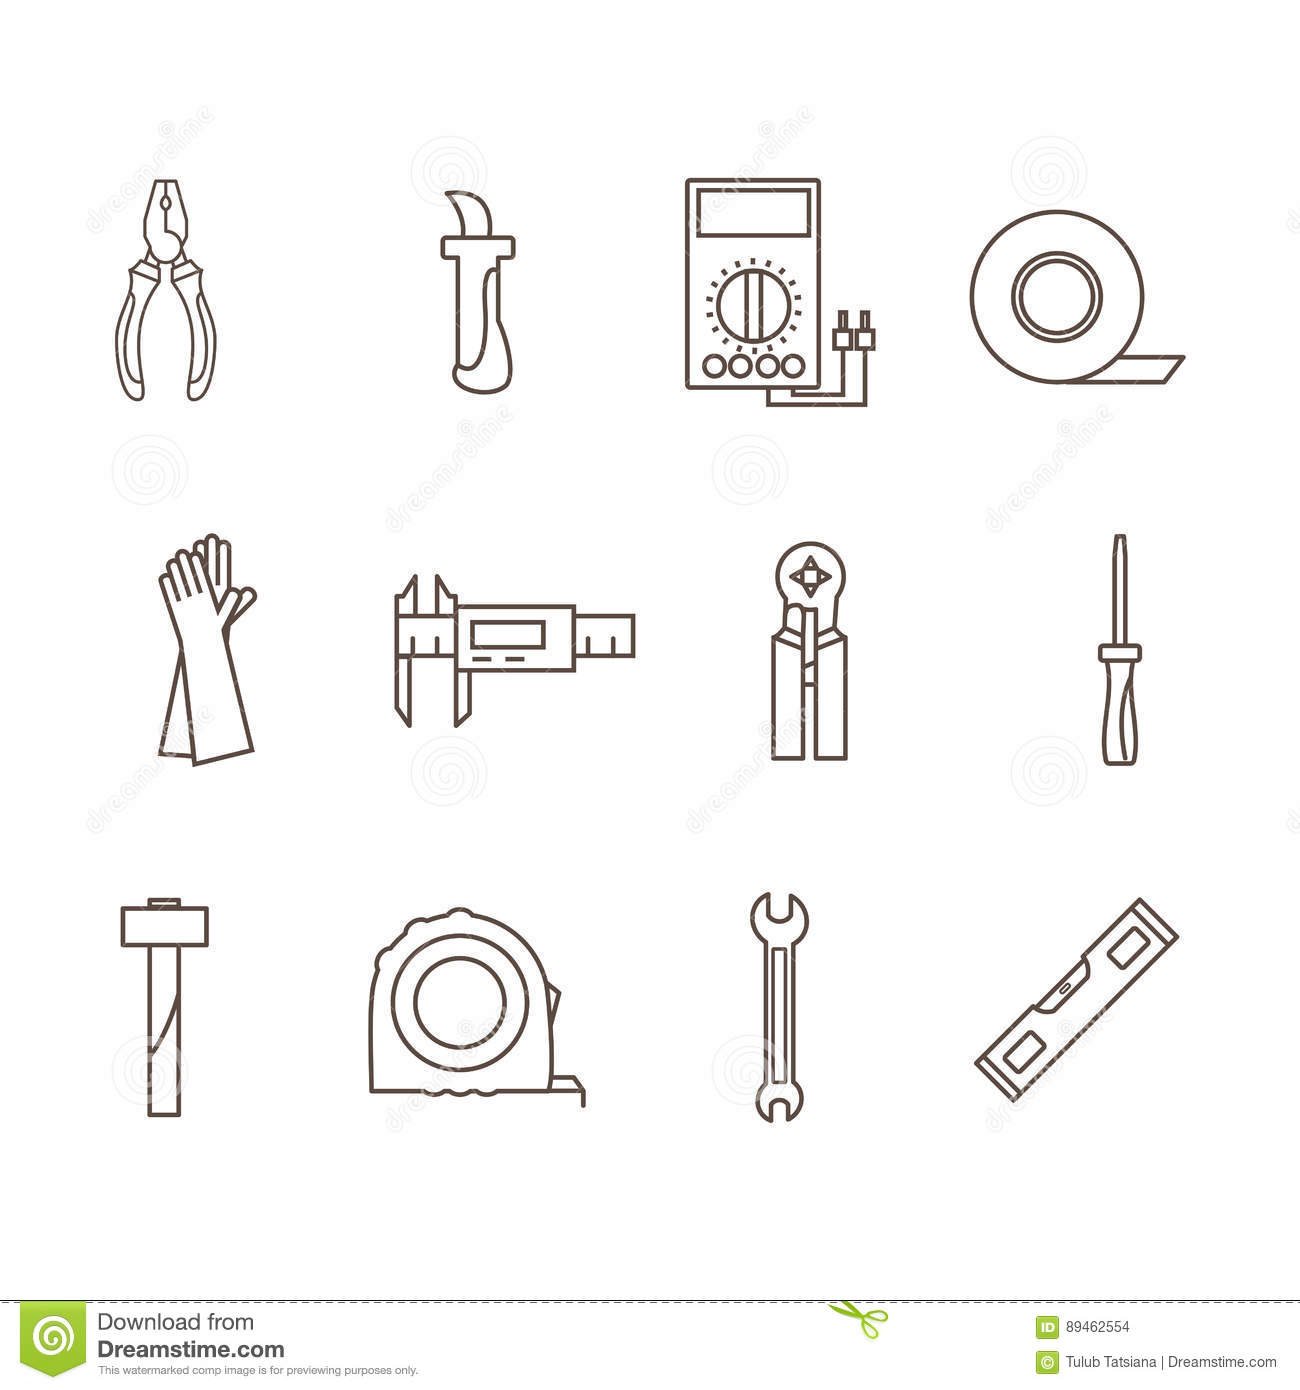 tools electrician in the style of the outline stock vector rh dreamstime com Electrical Wiring Diagrams Residential Electrical Wiring Diagrams